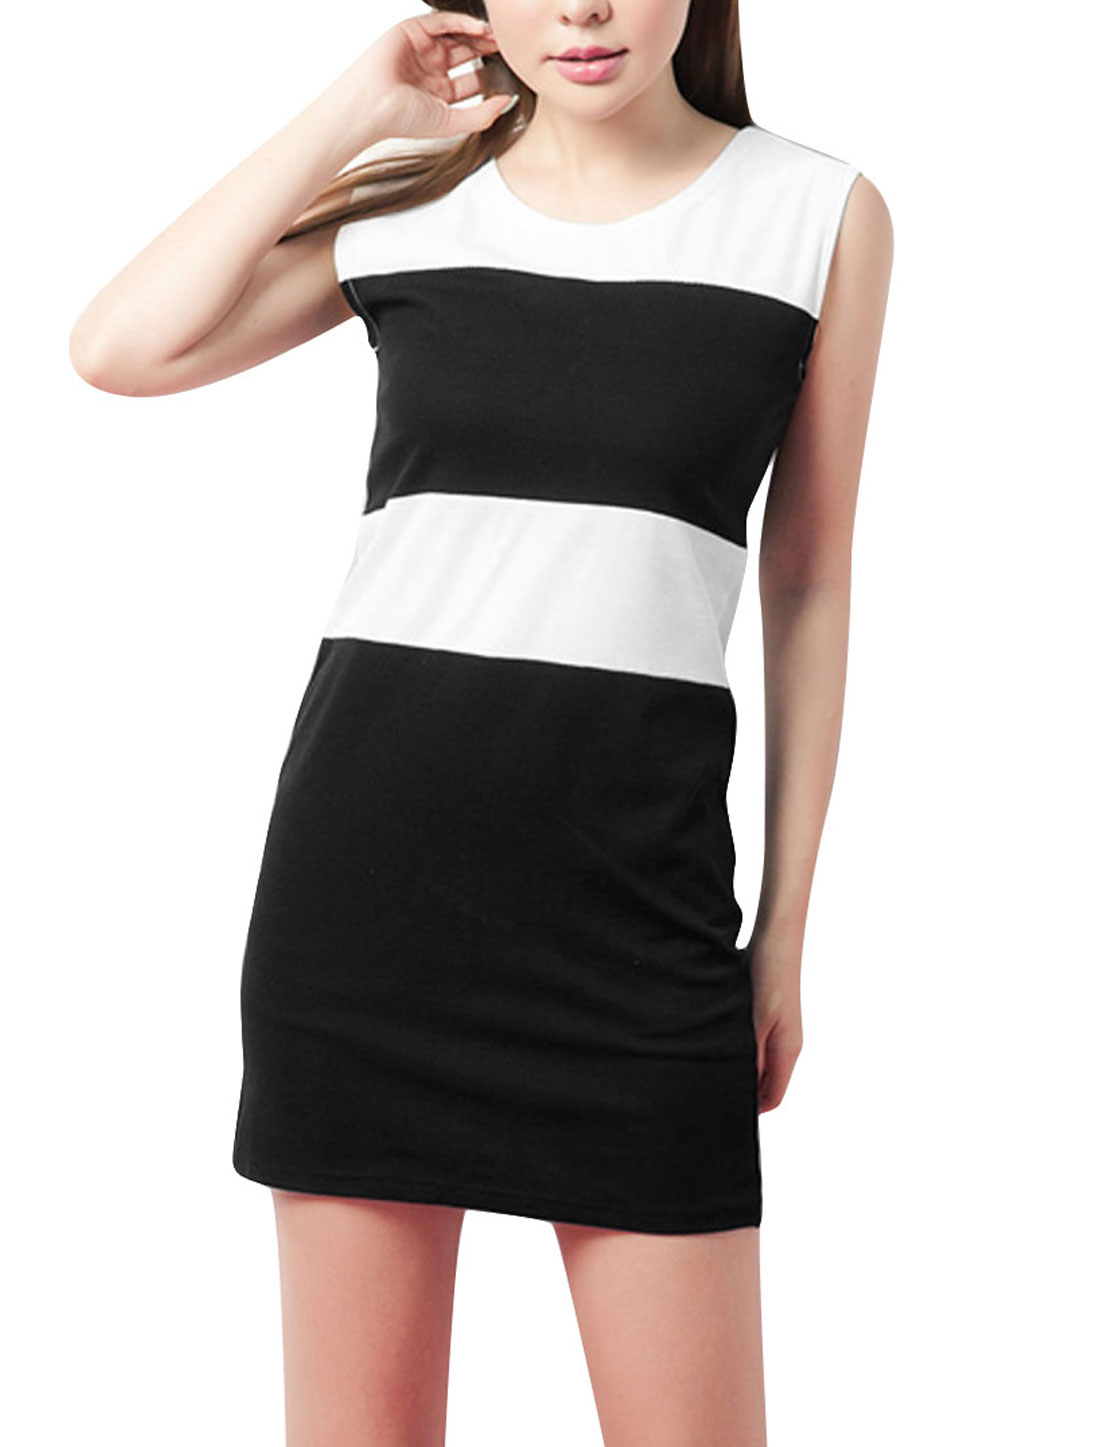 Ladies Chic Round Neck Sleeveless Contrast Color Black White Mini Dress XS